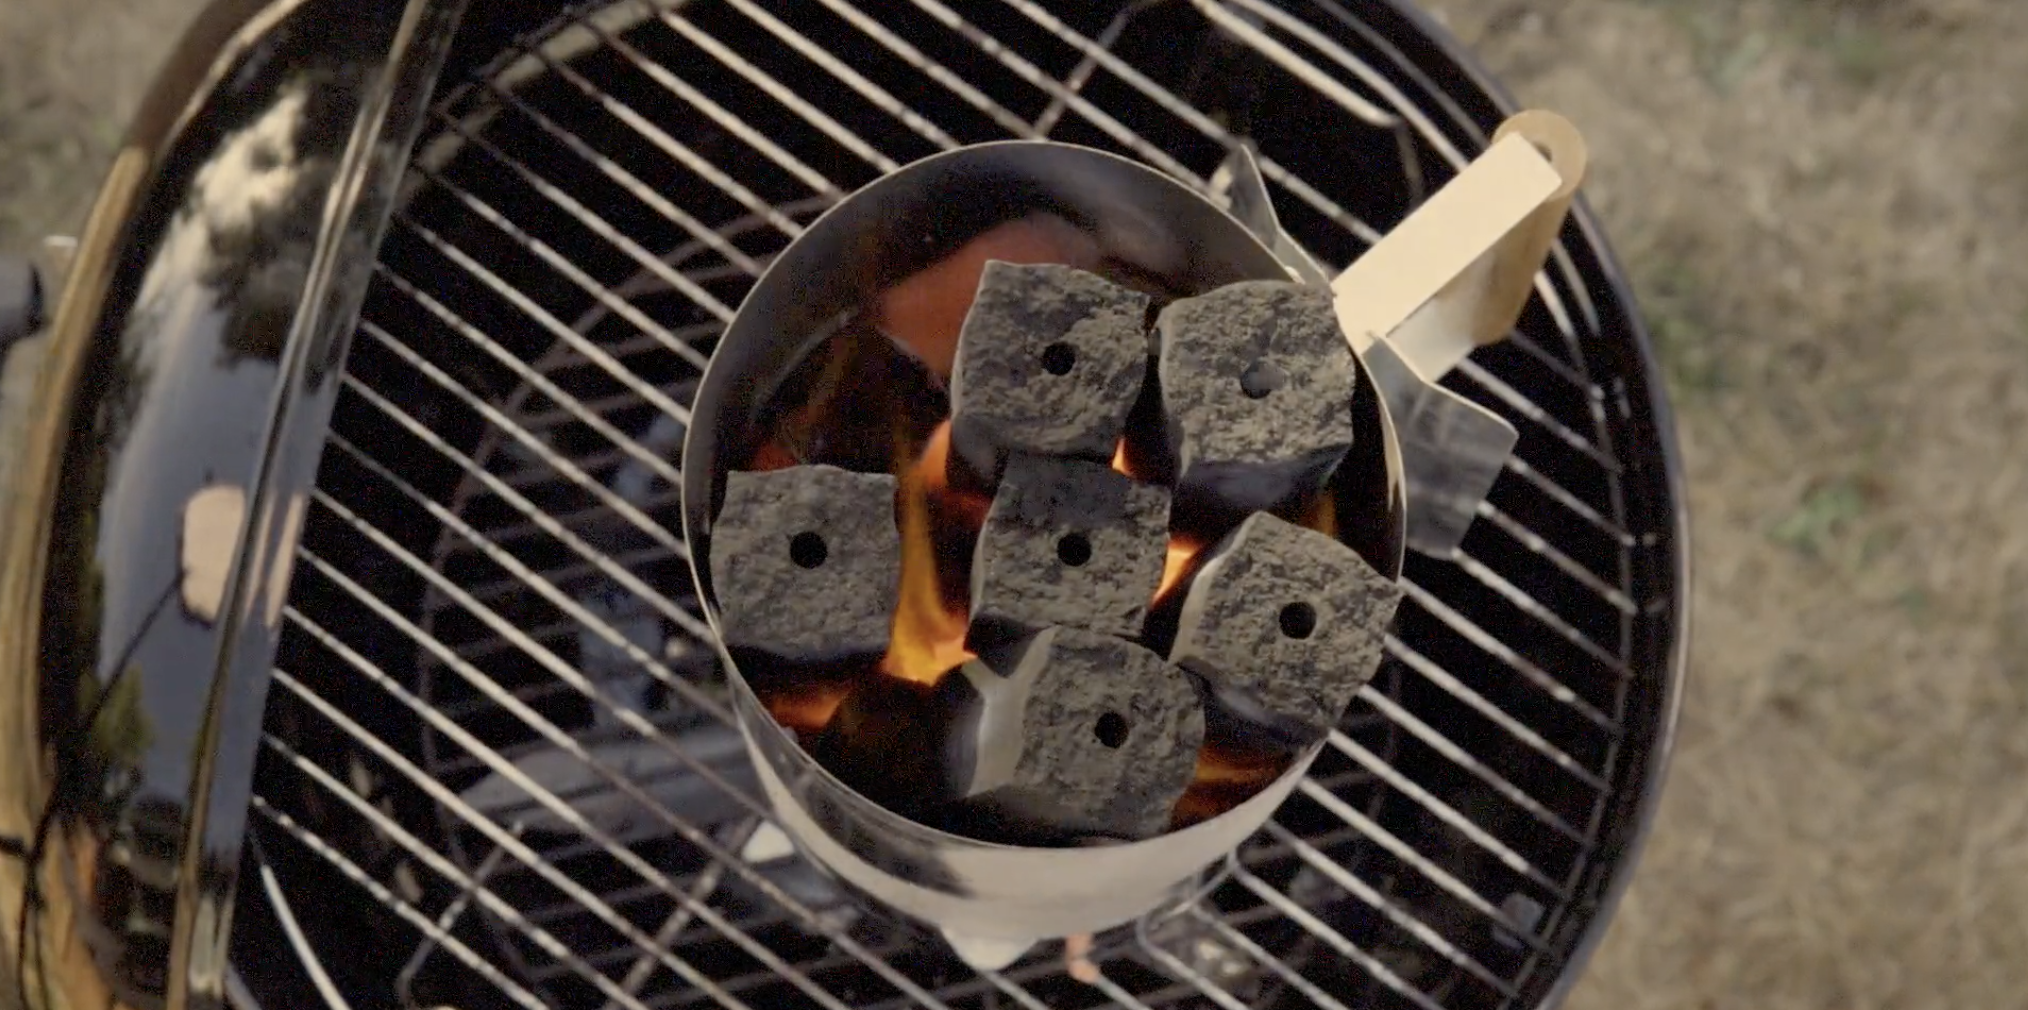 For Grilling Like a Pitmaster, You Need the Right Tools